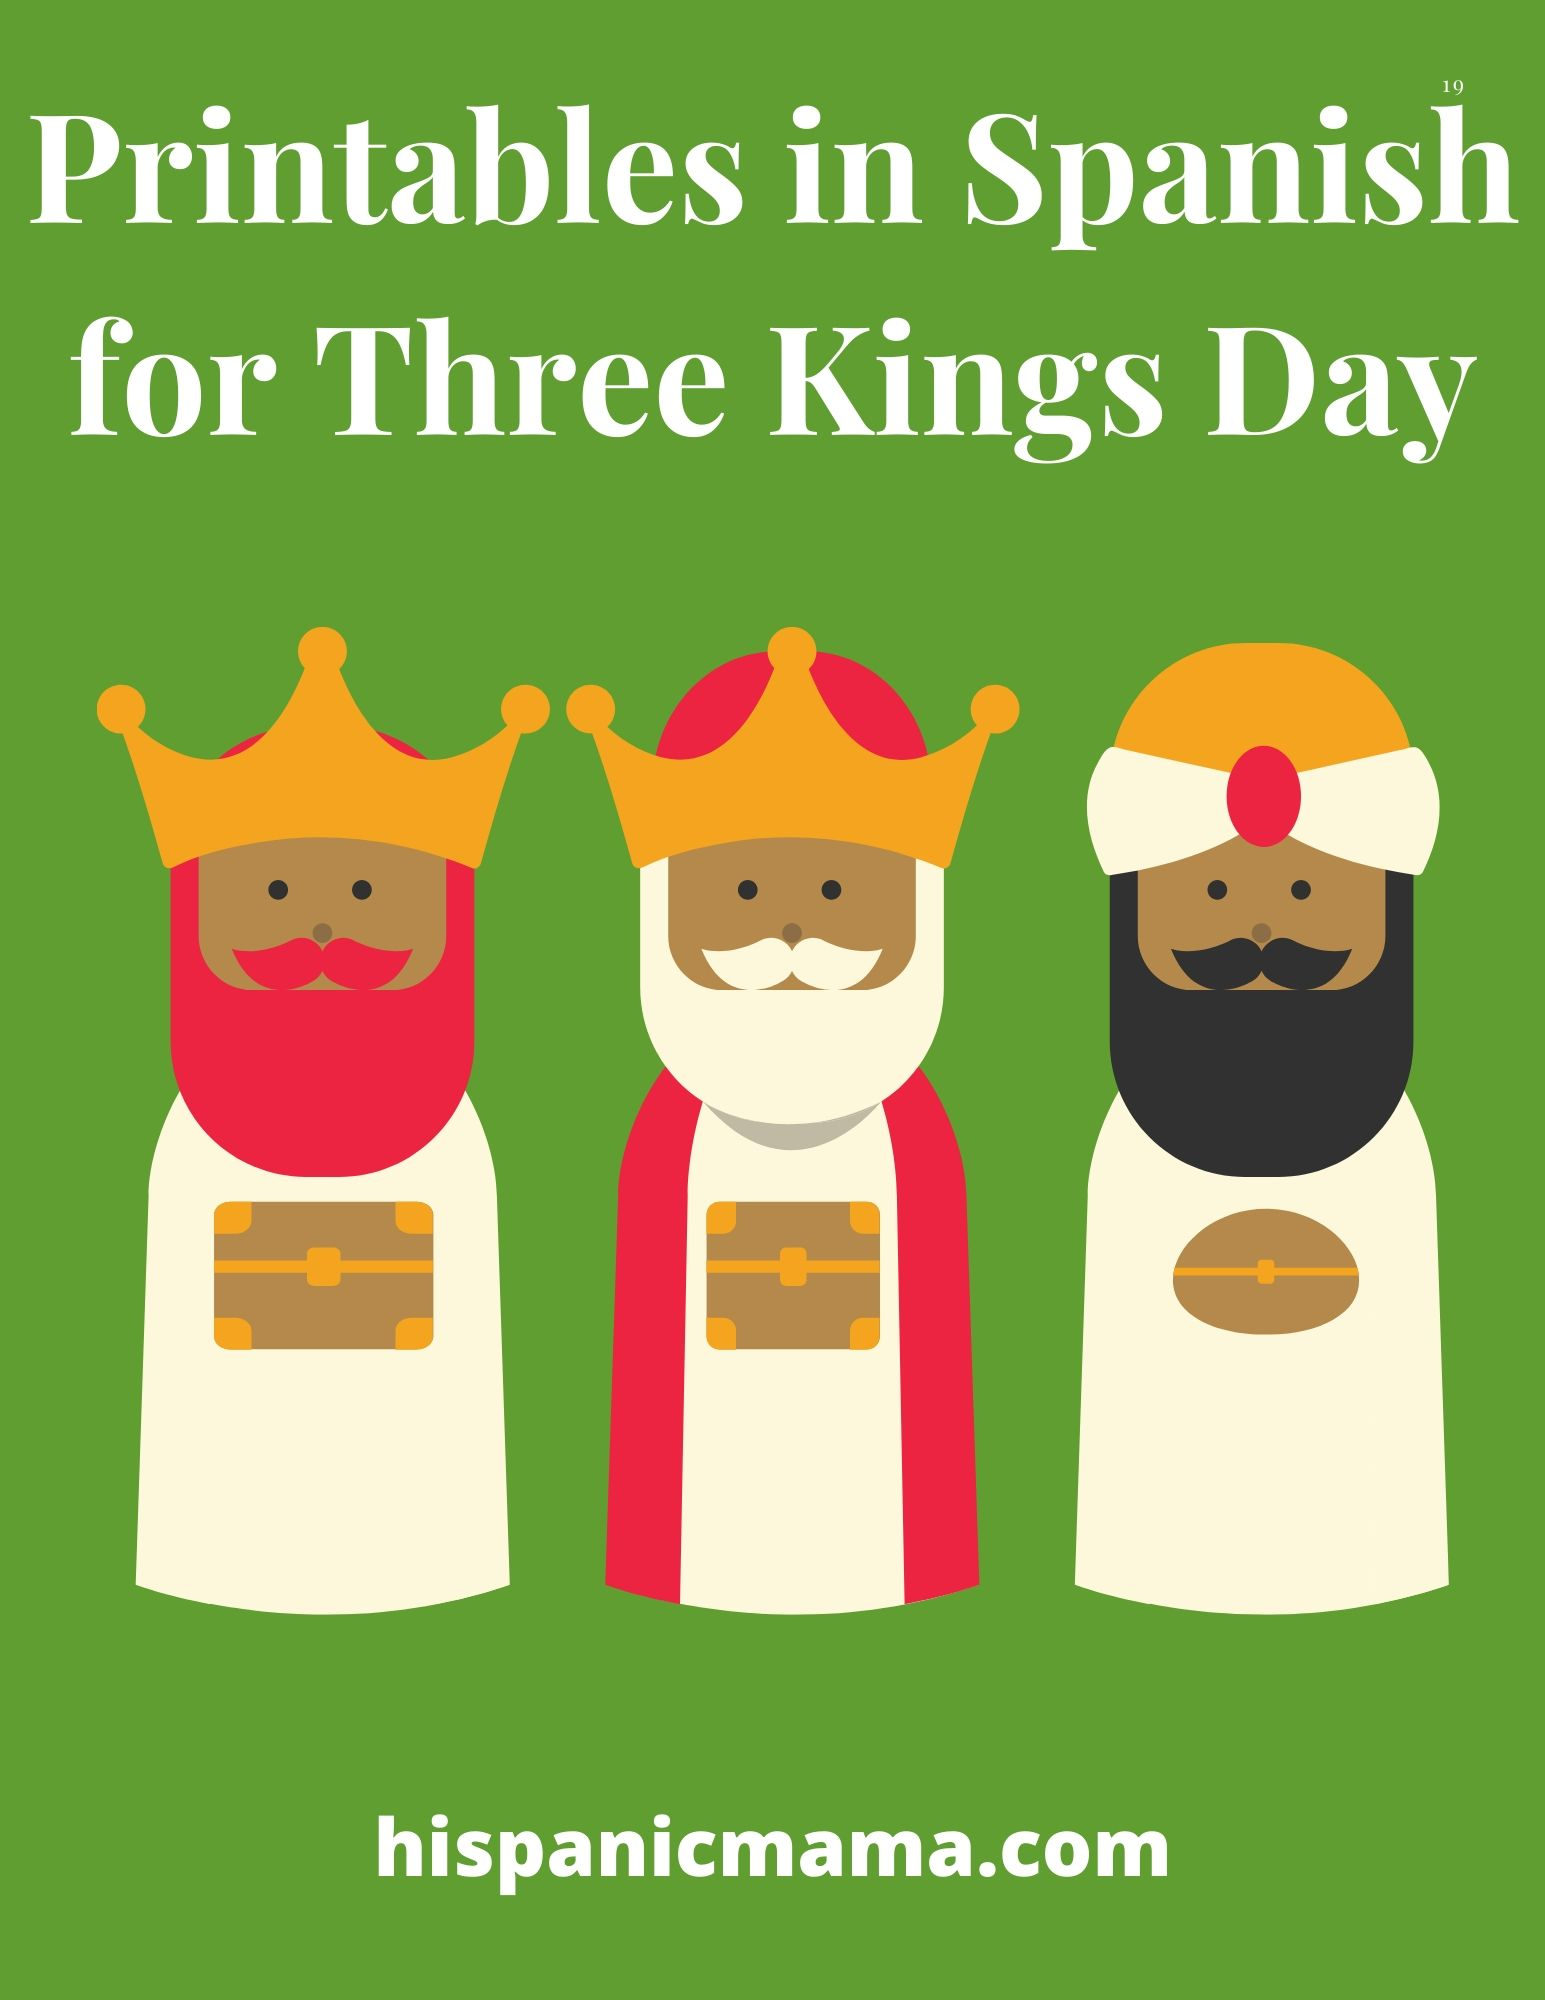 Printables in Spanish for Three Kings Day